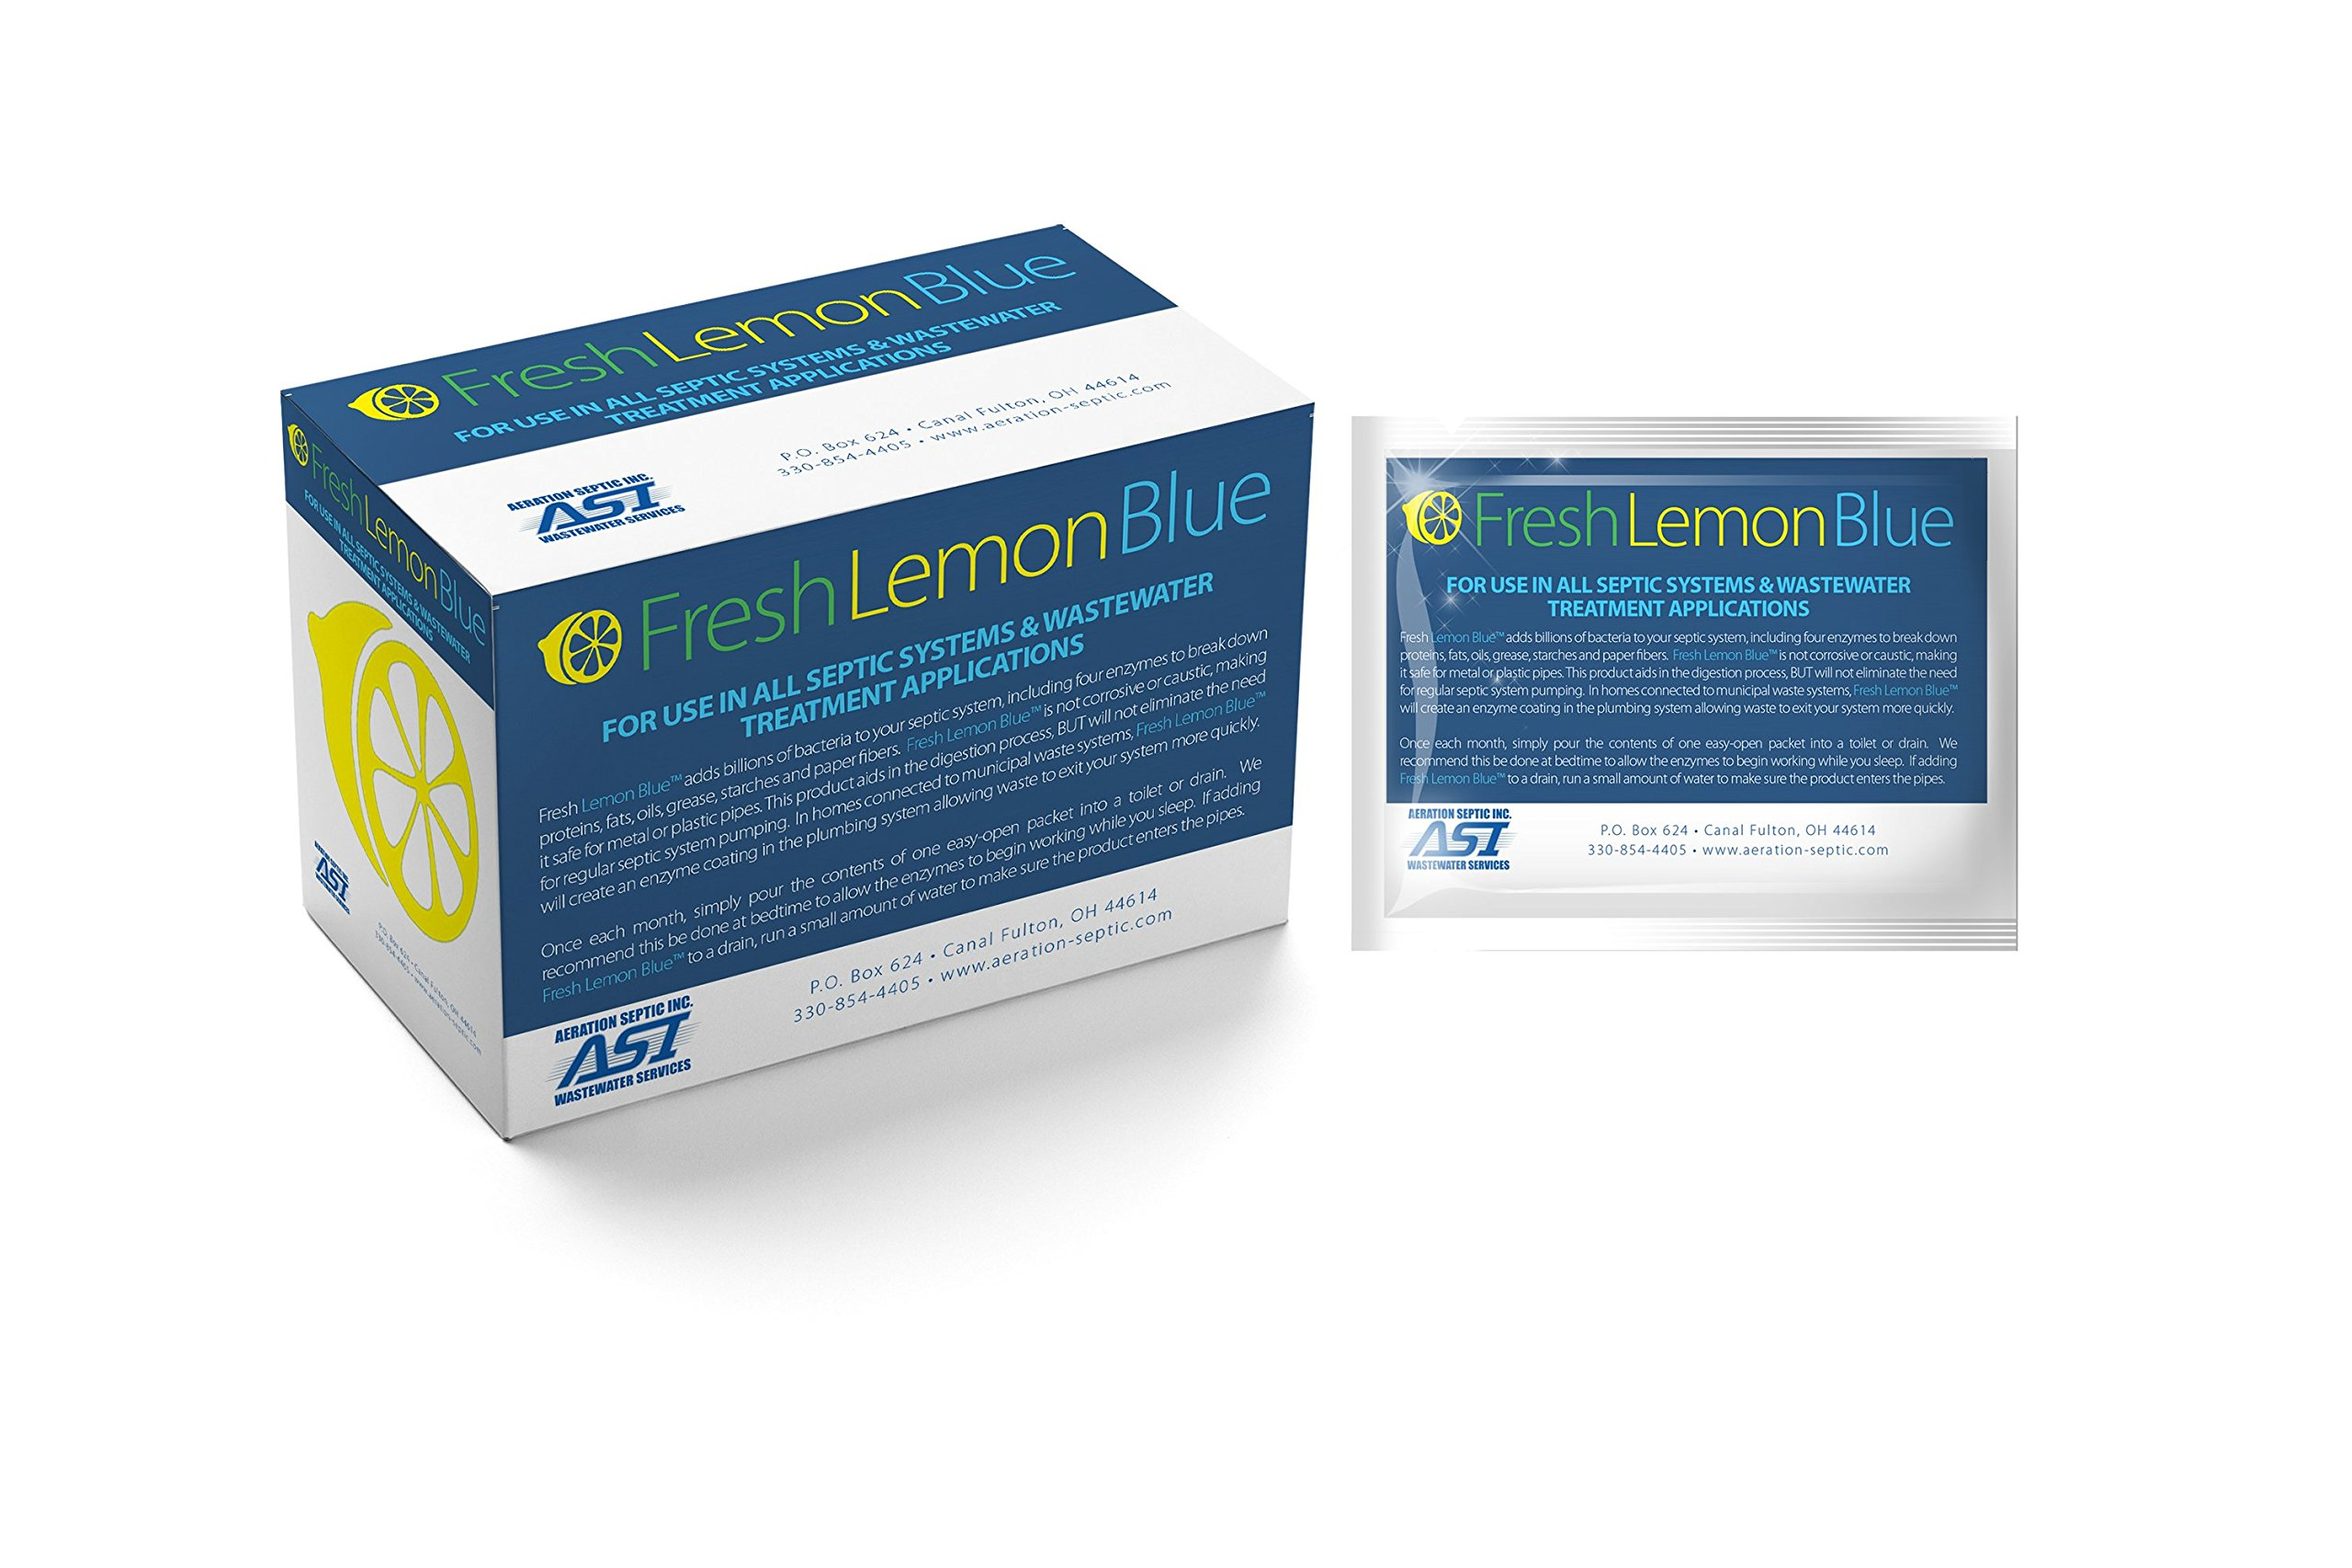 Fresh Lemon Blue Septic Tank System Treatment - Contains All Natural & Safe Enzymes And Bacteria 12 packets by Aeration Septic